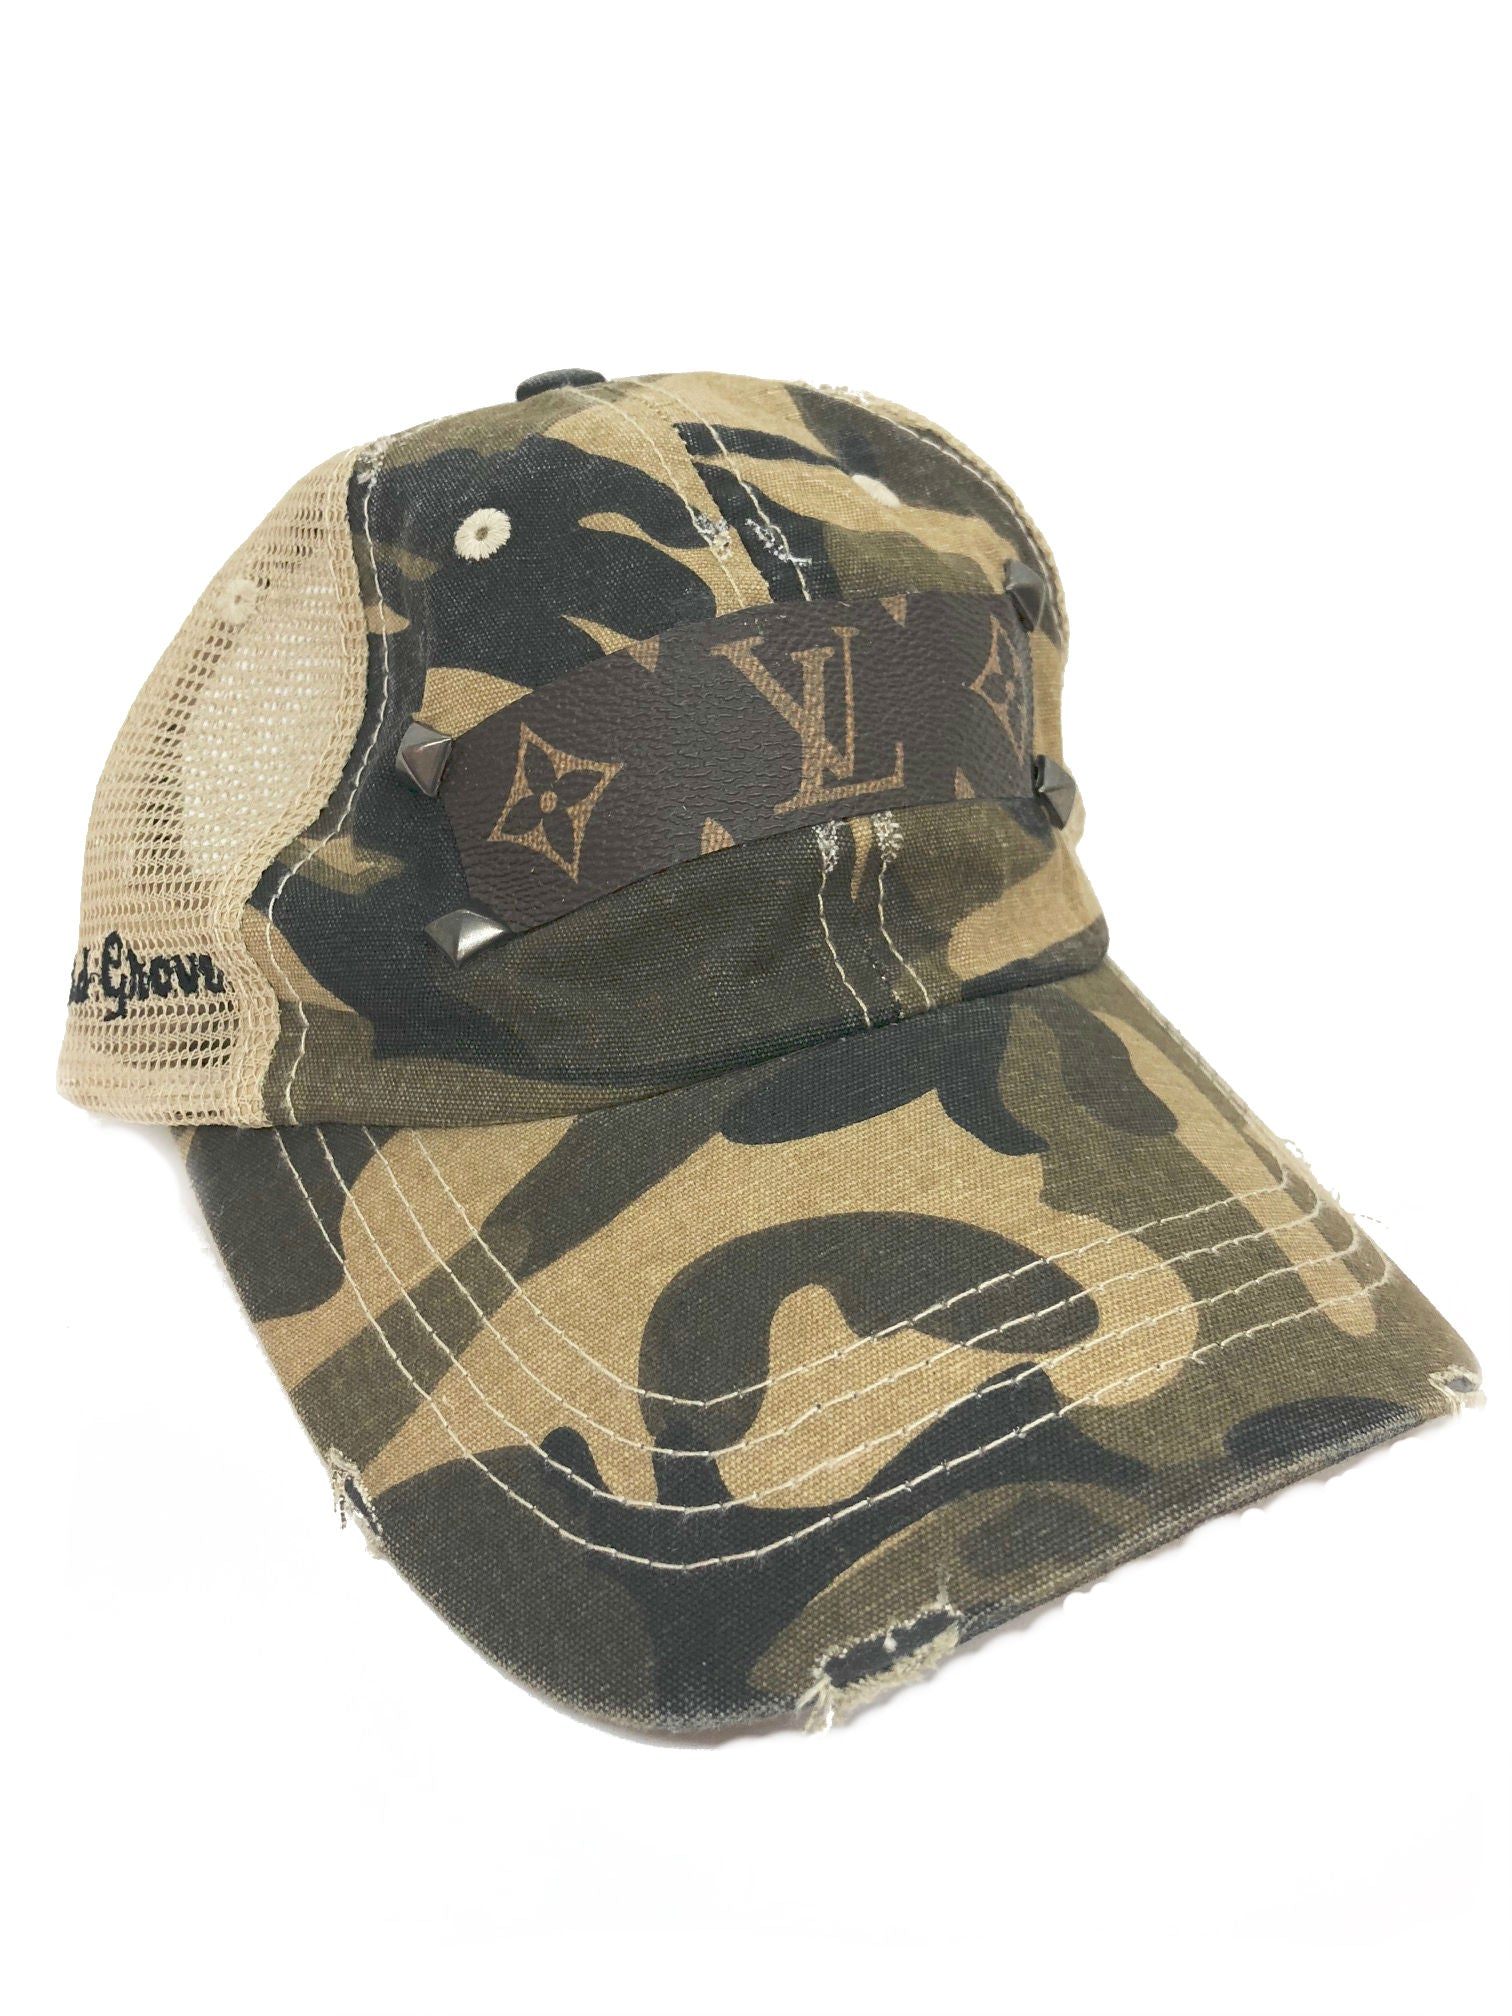 baseball hat camo louis vuitton mesh lake women girl casual